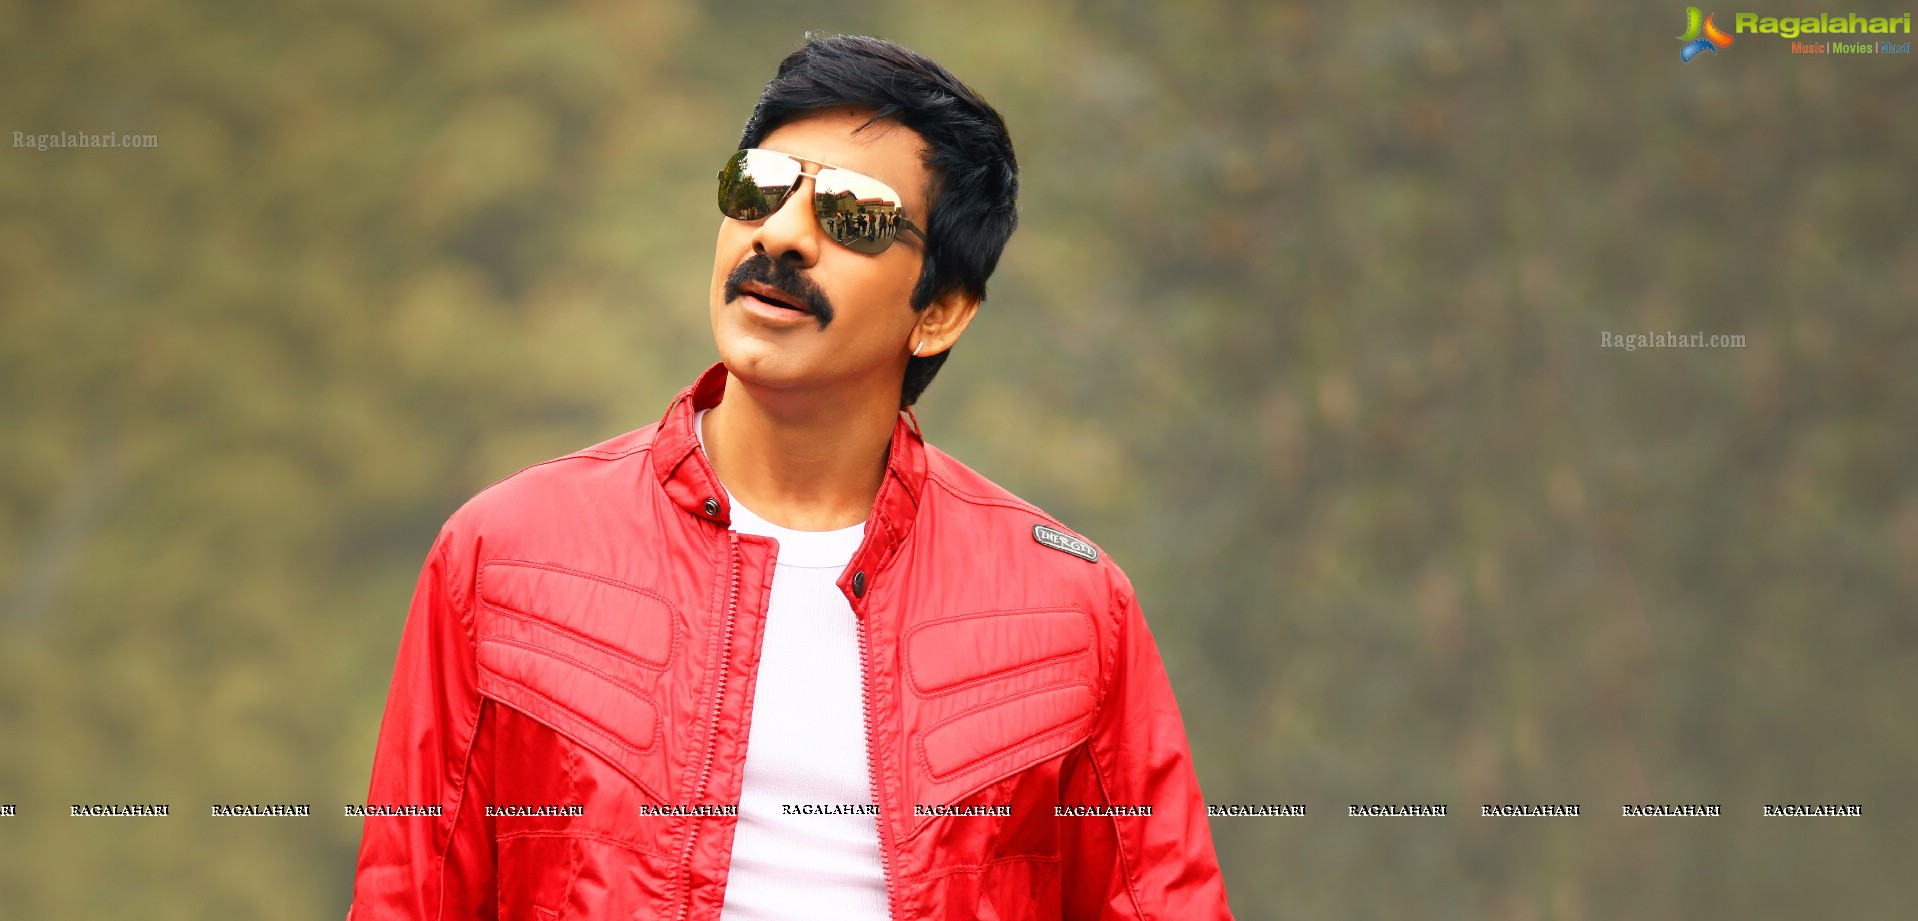 ravi teja (high definition) image 3 | latest bollywood actor